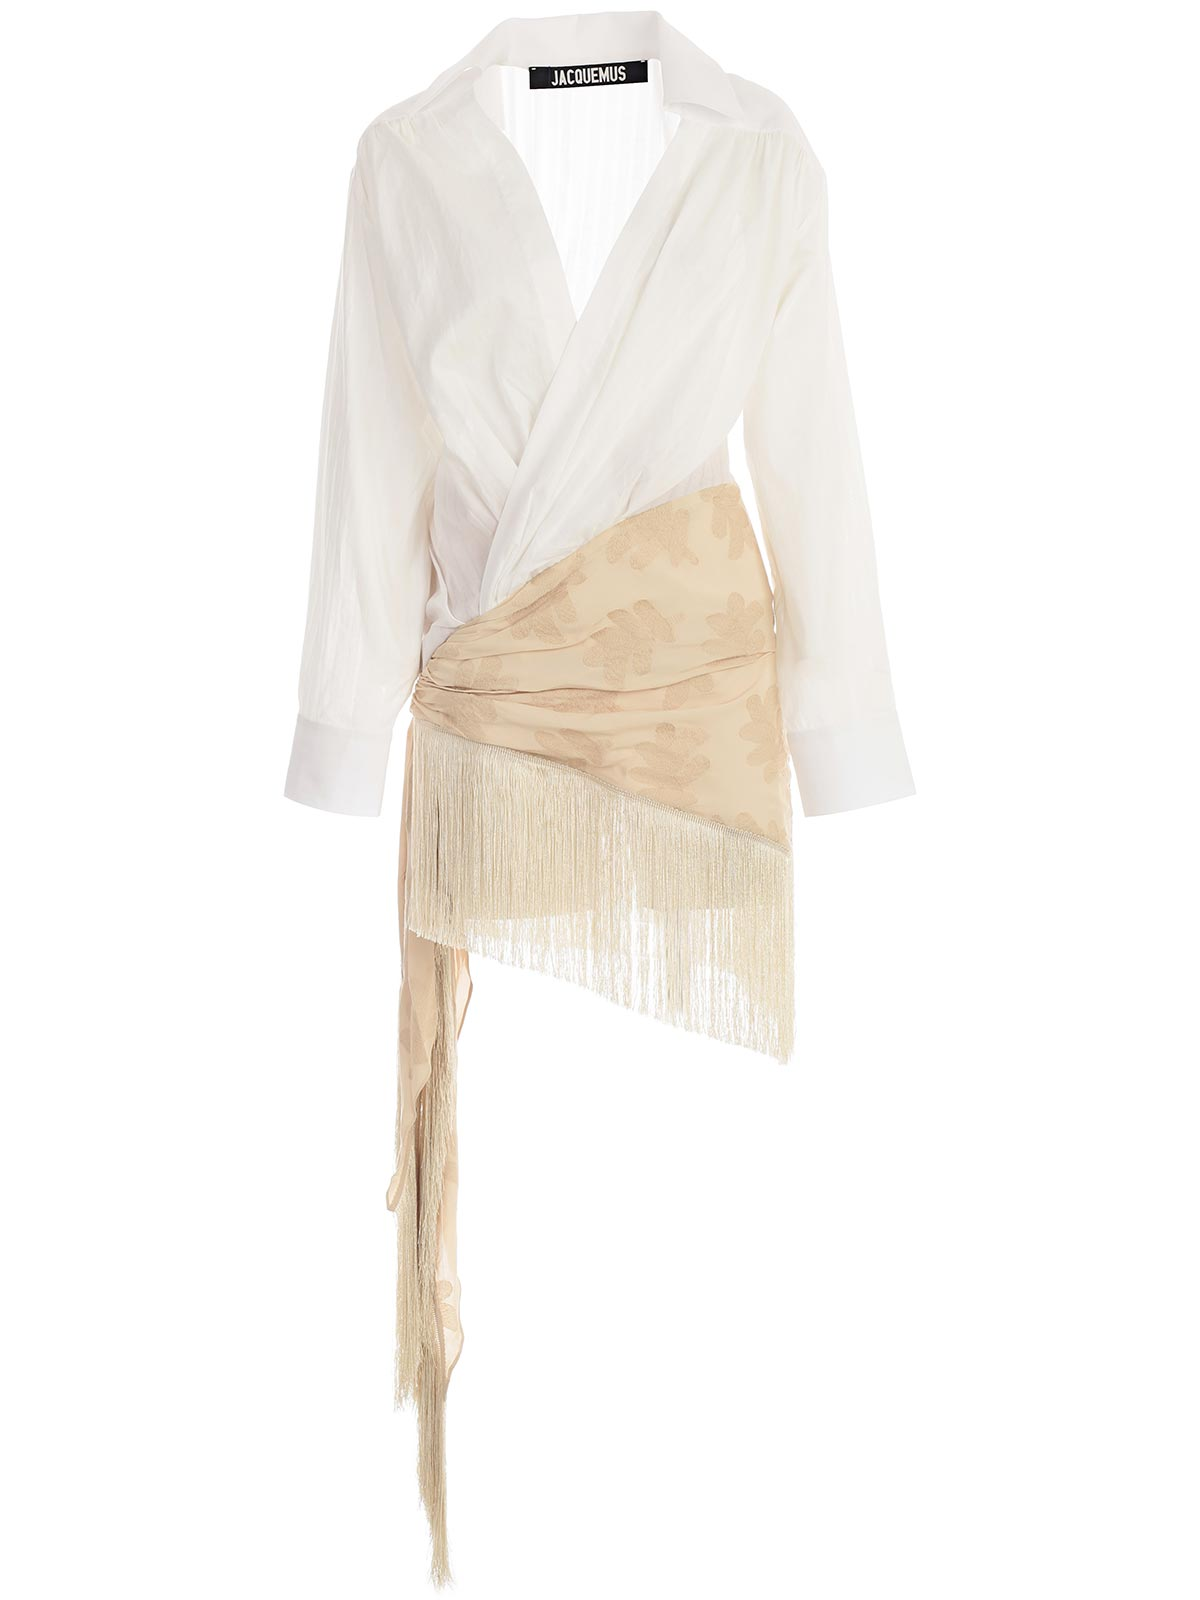 Picture of Jacquemus Dress